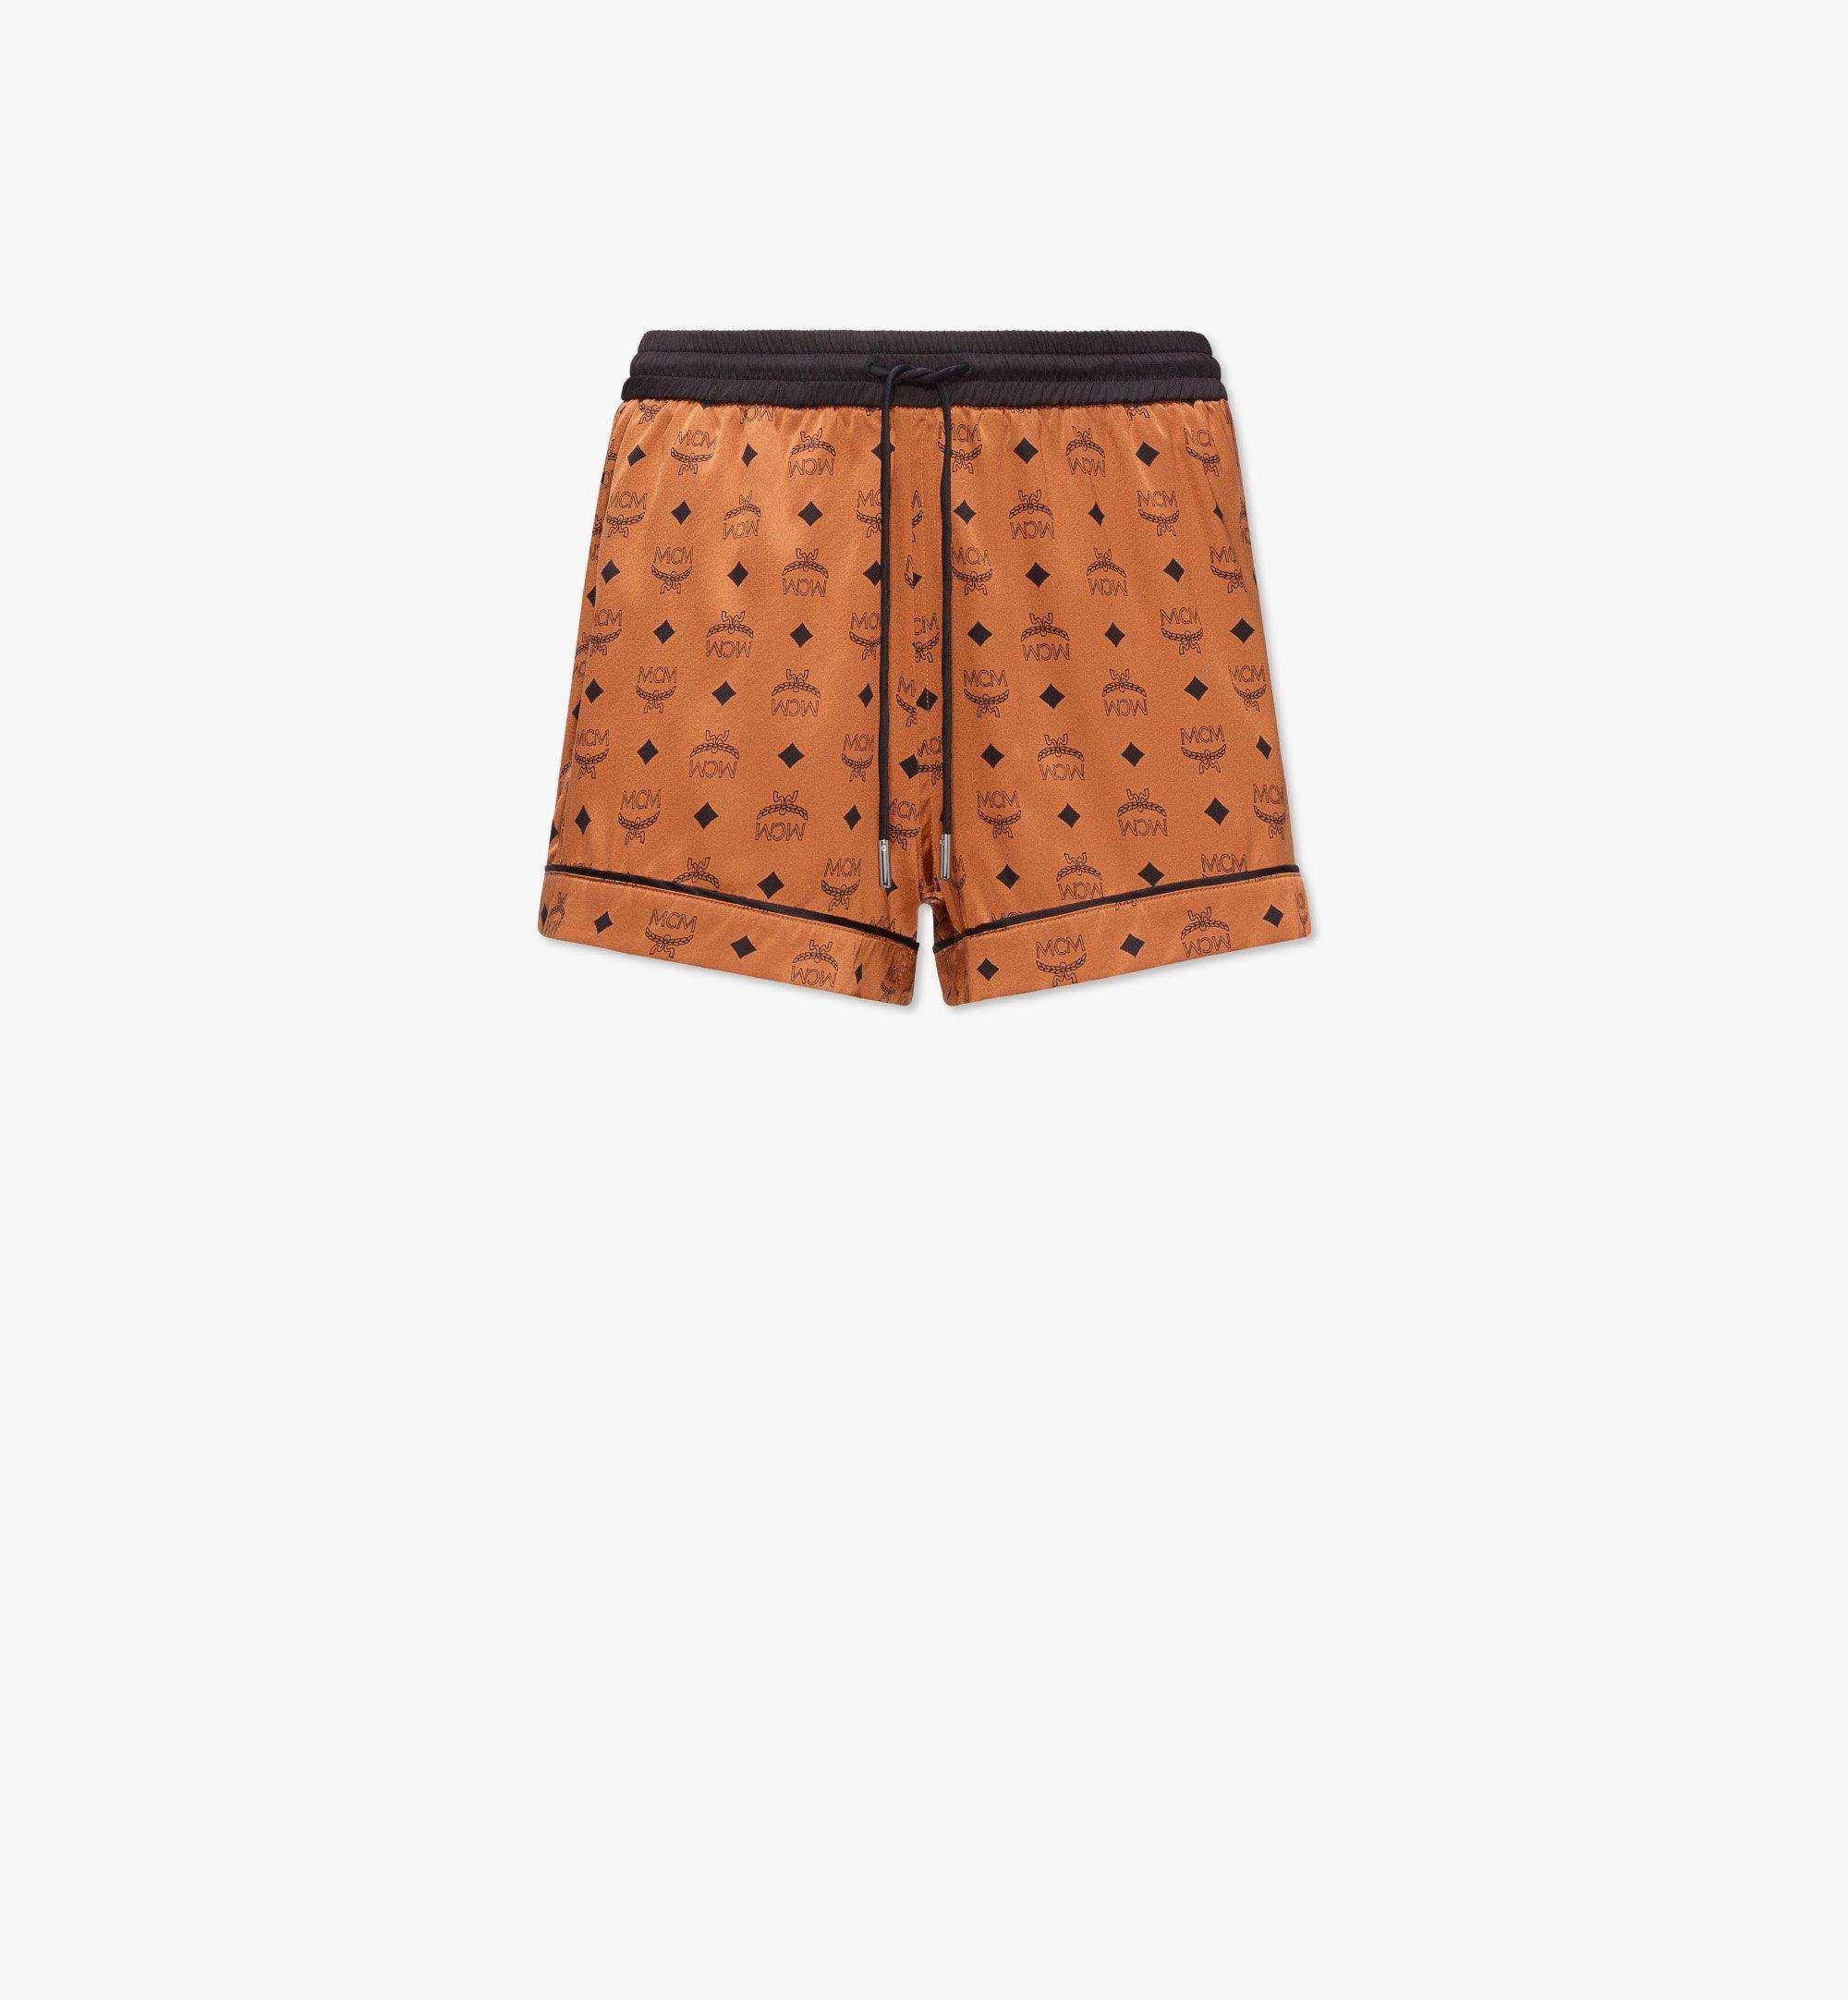 MCM Women's Silk Sleep Shorts  - COGNAC - Size: Small